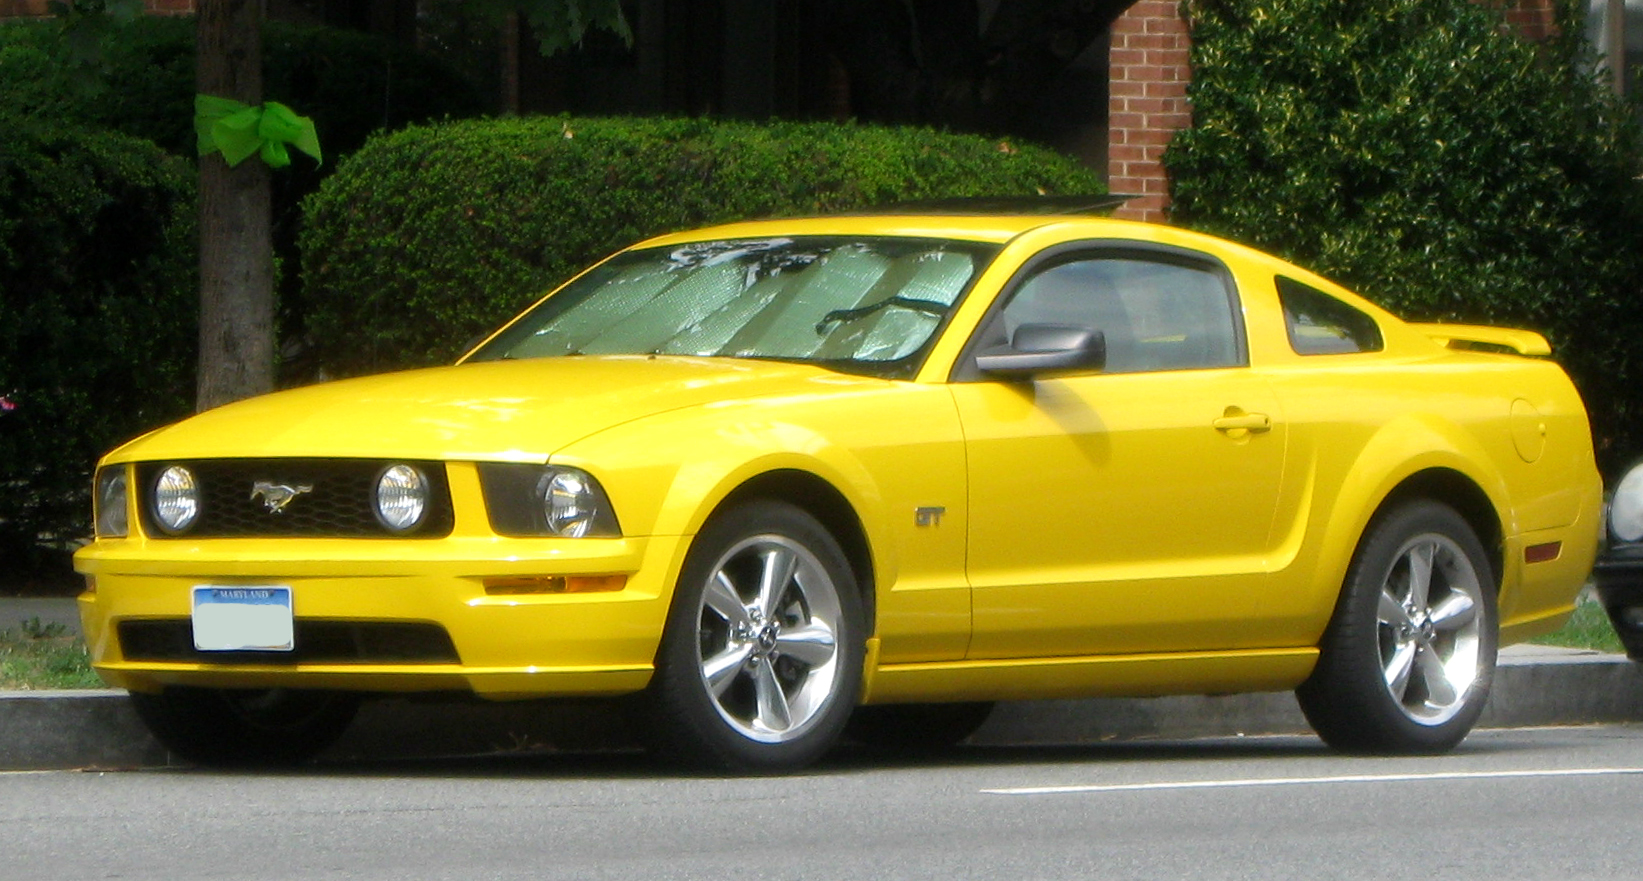 2009 Ford Mustang #6